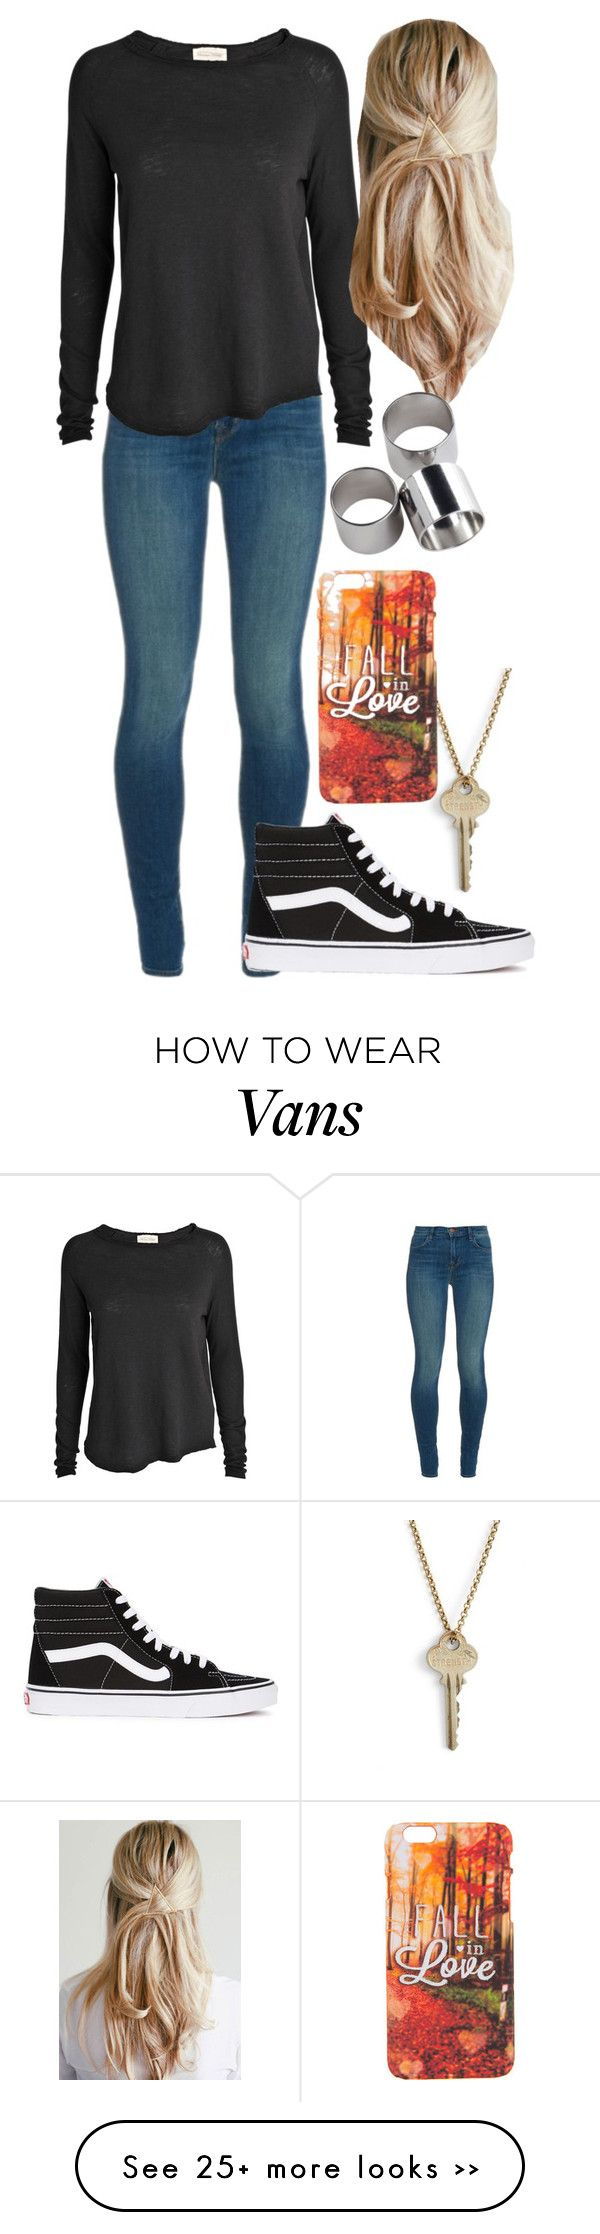 """""""Fall In Love"""" by stepupdancer on Polyvore featuring The Giving Keys, J Brand, American Vintage, MTWTFSS Weekday and Vans"""